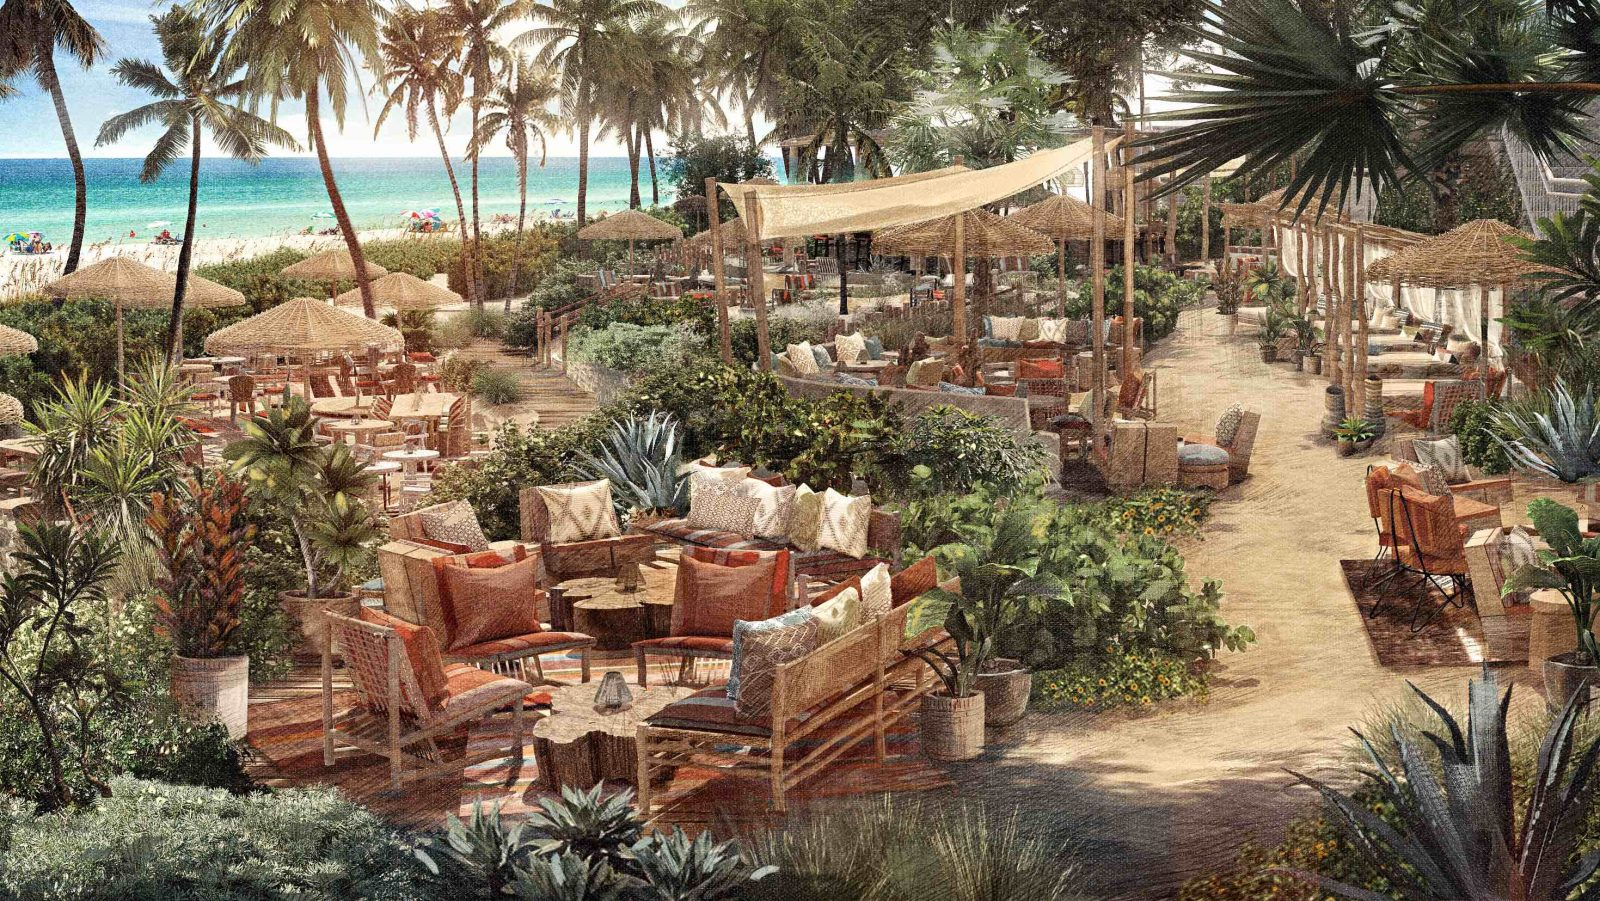 1 Hotel South Beach Launches 1 Beach Club New Restaurant Wave